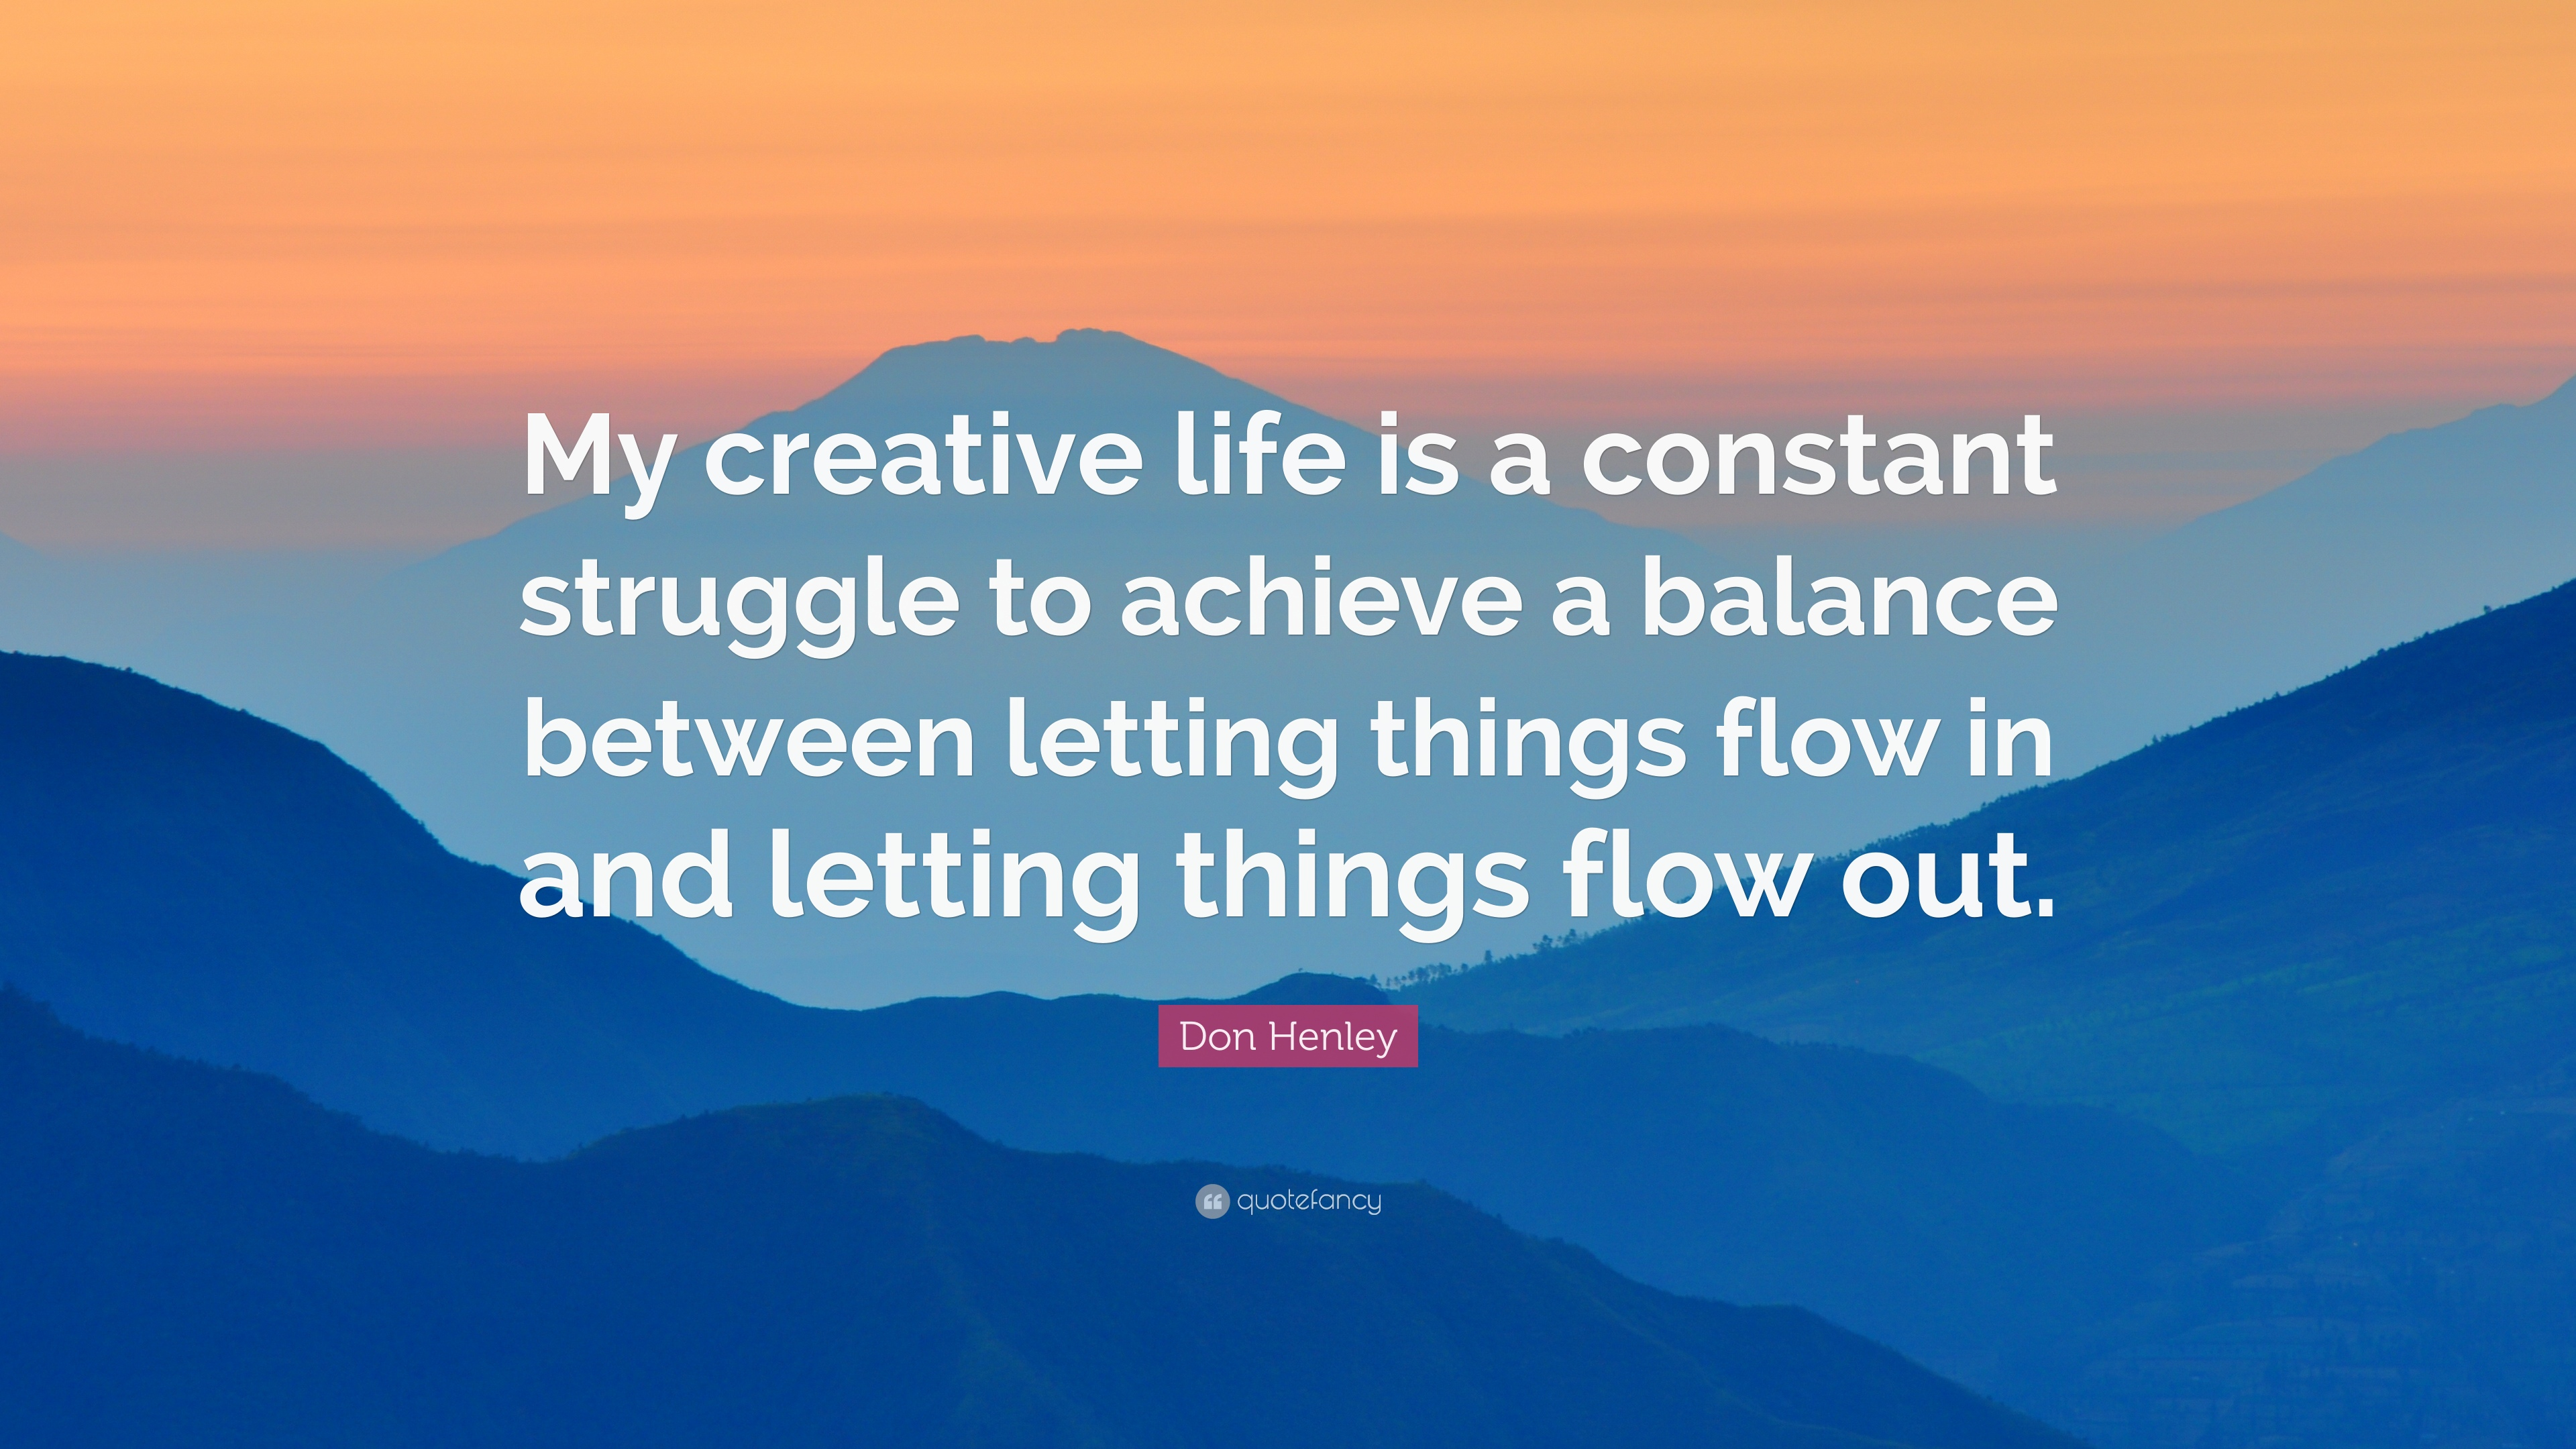 life is a constant struggle It's a life long struggle, haynes wrote love those suffering anxiety has caused  me to be extremely agoraphobic & livin in constant fear of.